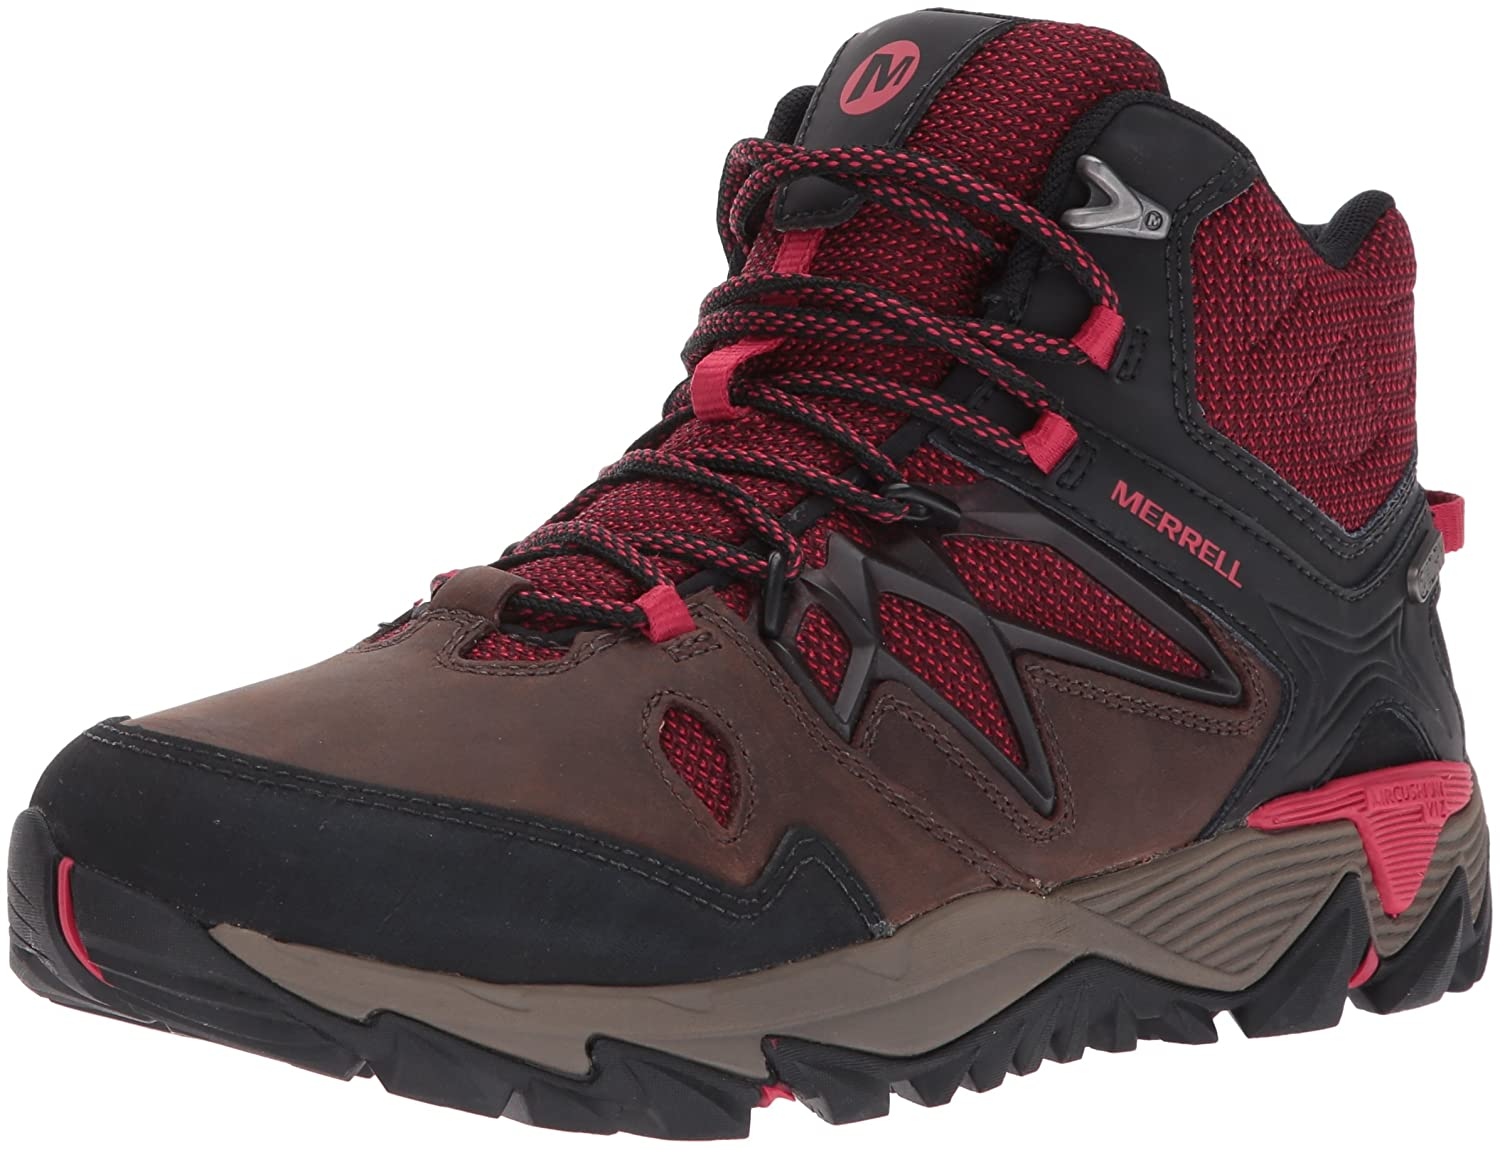 Merrell Women's All Out Blaze 2 Mid Waterproof Hiking Boot B01MU148RJ 7 B(M) US|Cinnamon